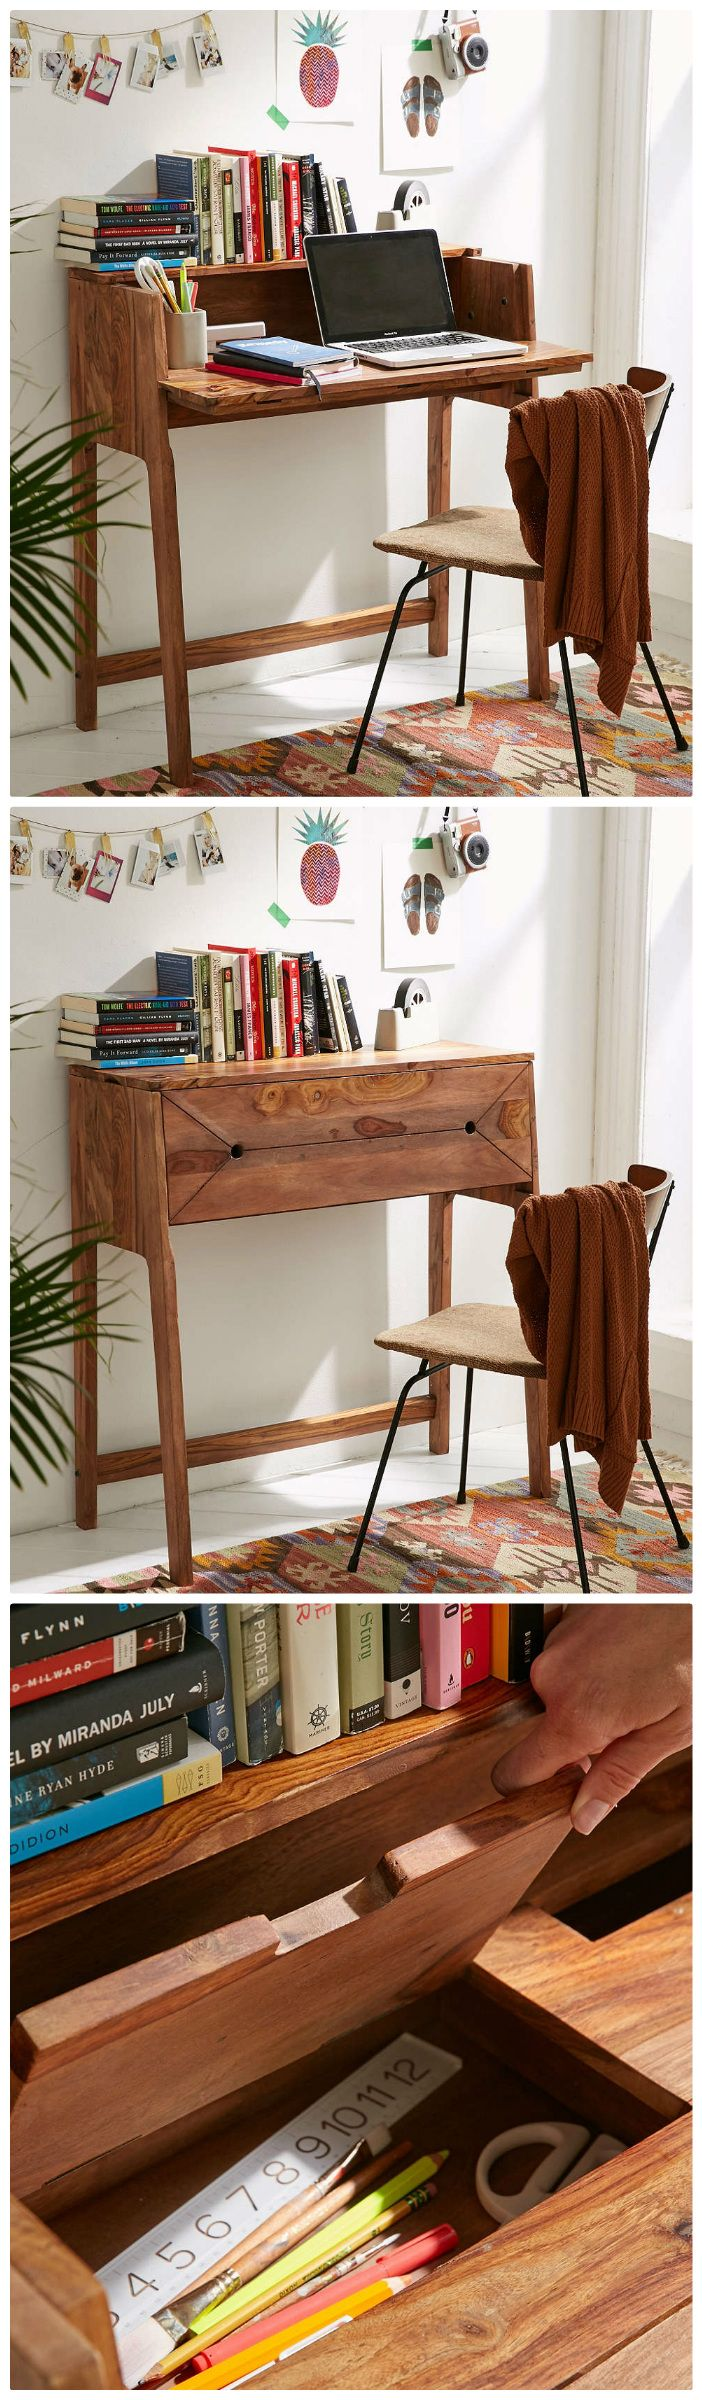 Space Saving Living Room Furniture 17 Best Ideas About Space Saving Desk On Pinterest Folding